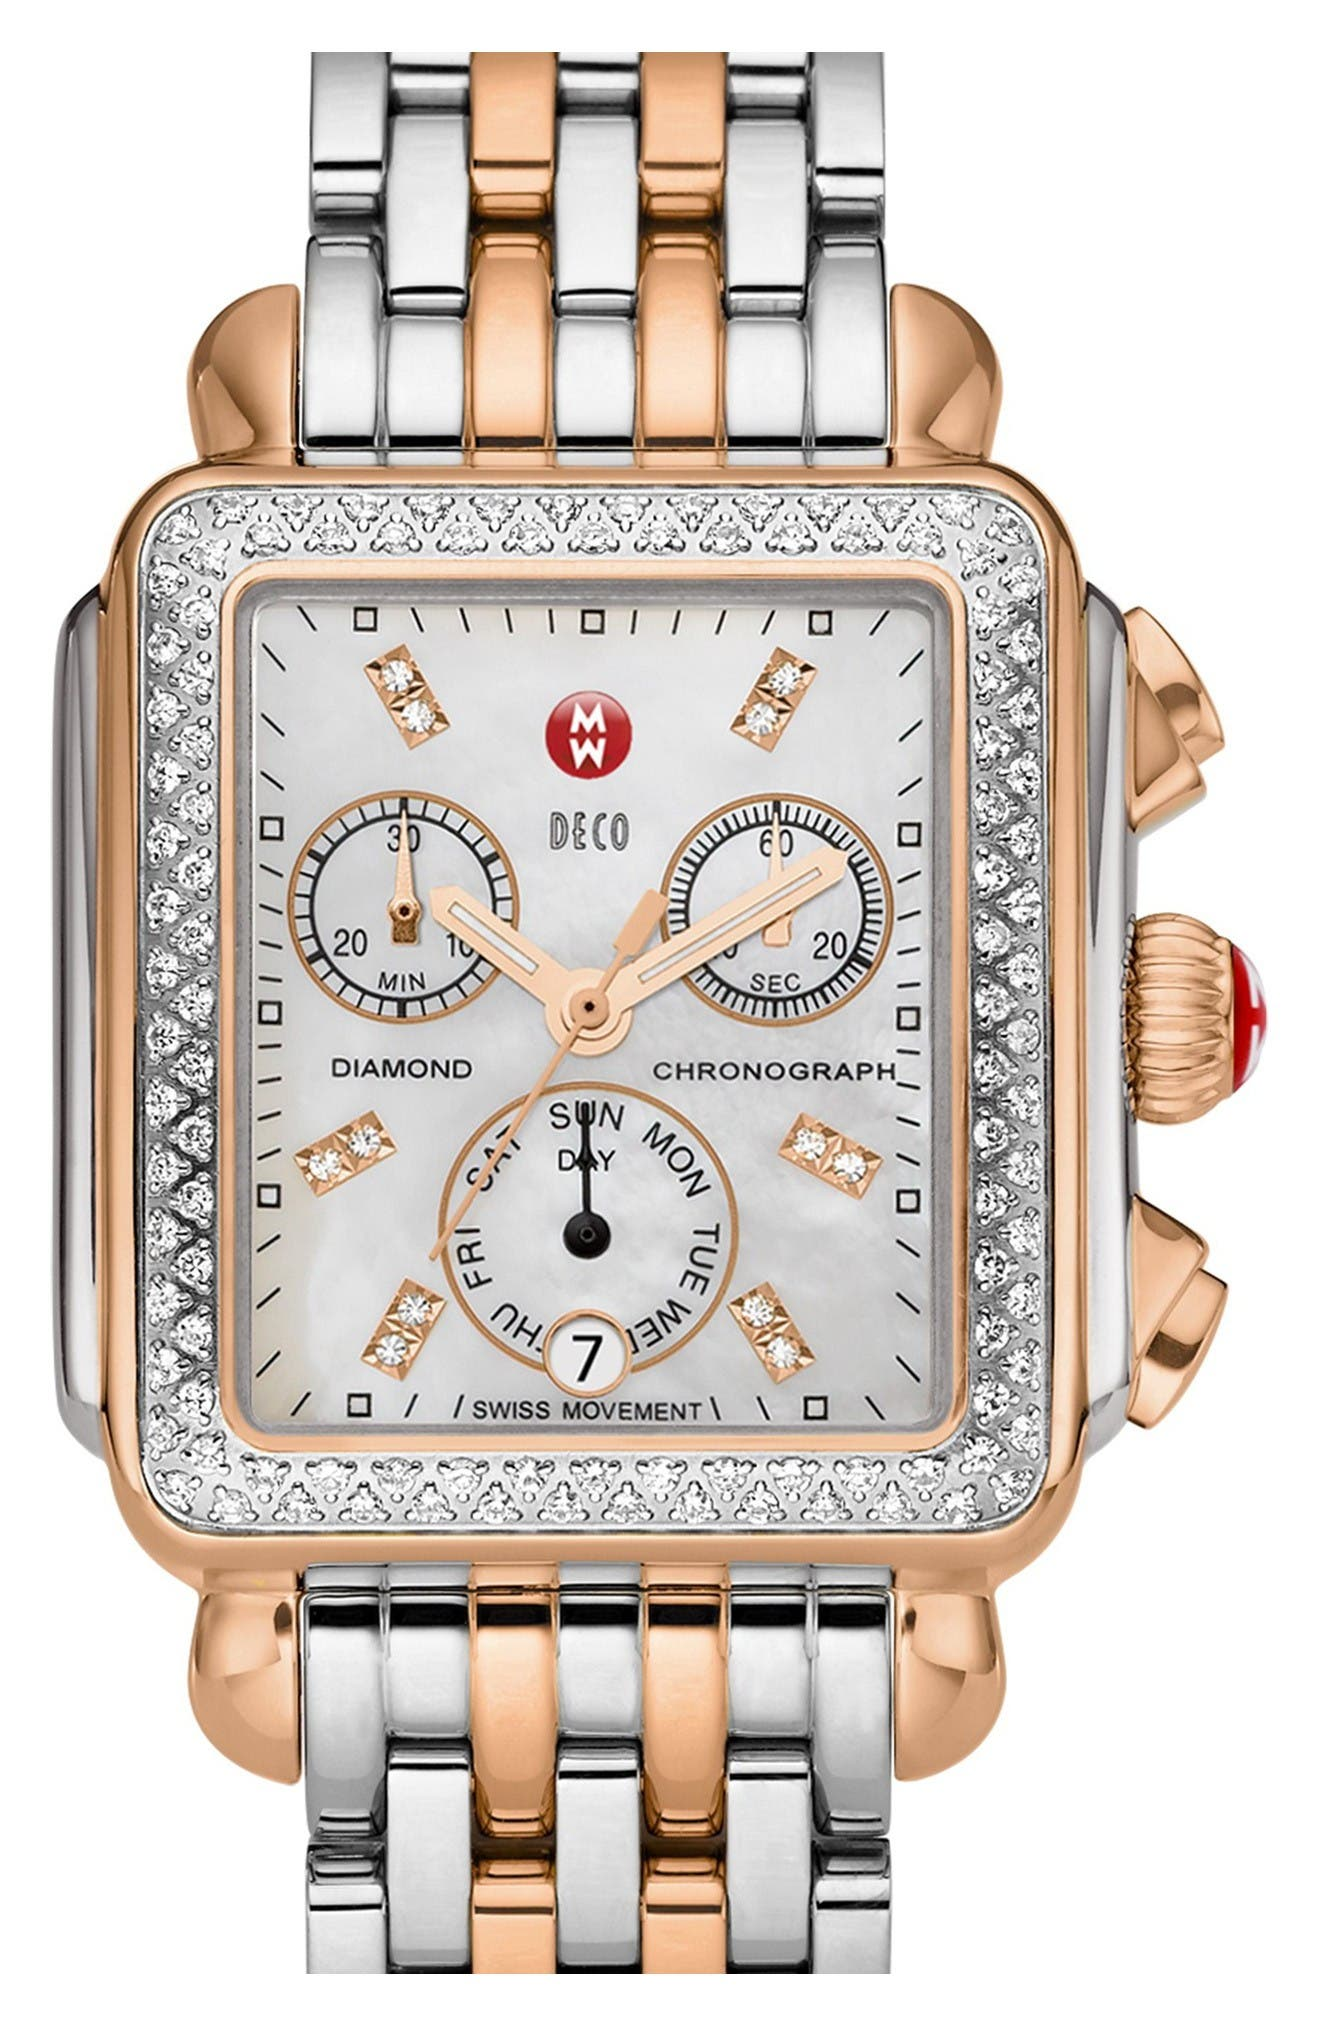 MICHELE, Deco Diamond Diamond Dial Watch Case, 33mm x 35mm, Alternate thumbnail 5, color, SILVER/ ROSE GOLD